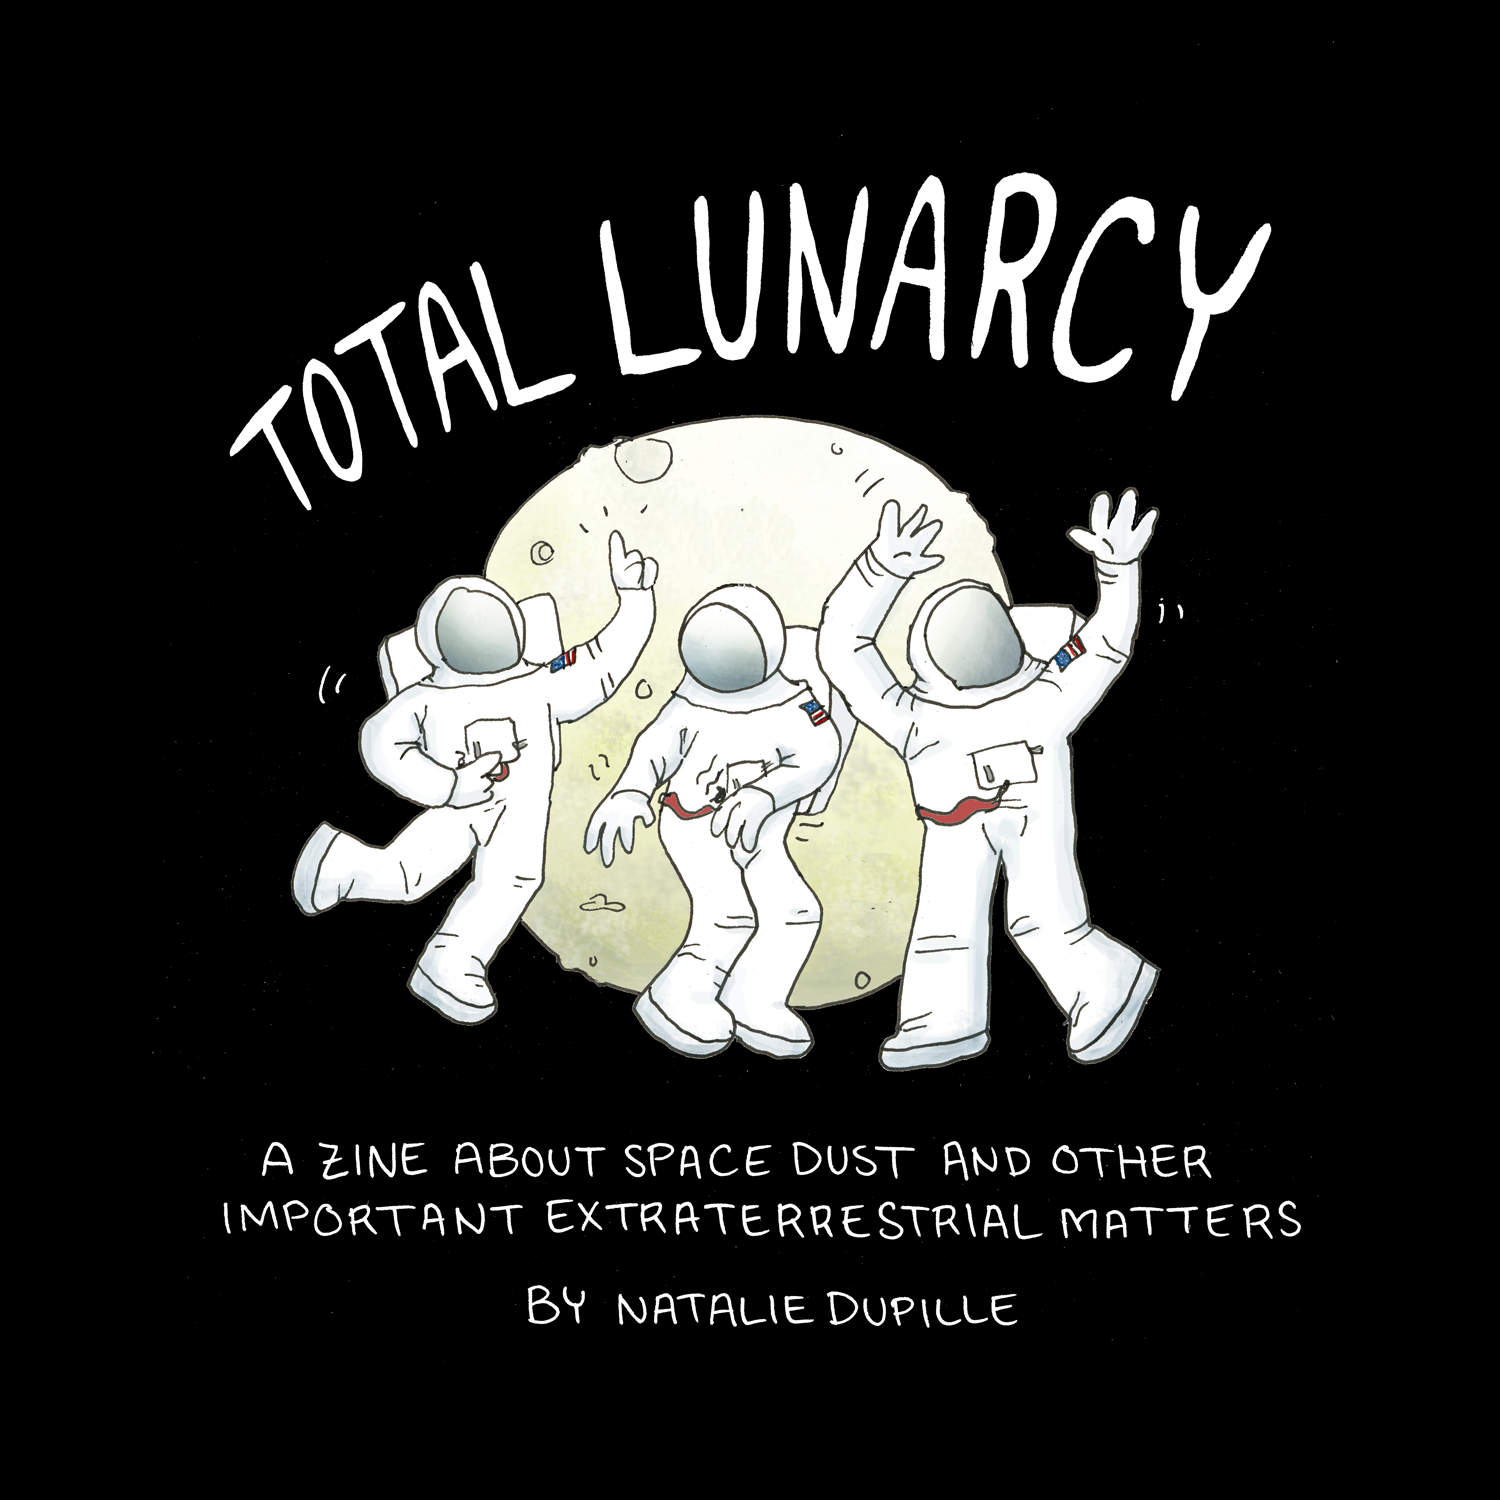 total lunarcy  zine produced in collaboration with Erika Harnett of the University of Washington's Earth and Space Sciences program with funding from the Pacific Science Center. 7 x 7, full color, saddle stitched. 20 pages, september 2017.